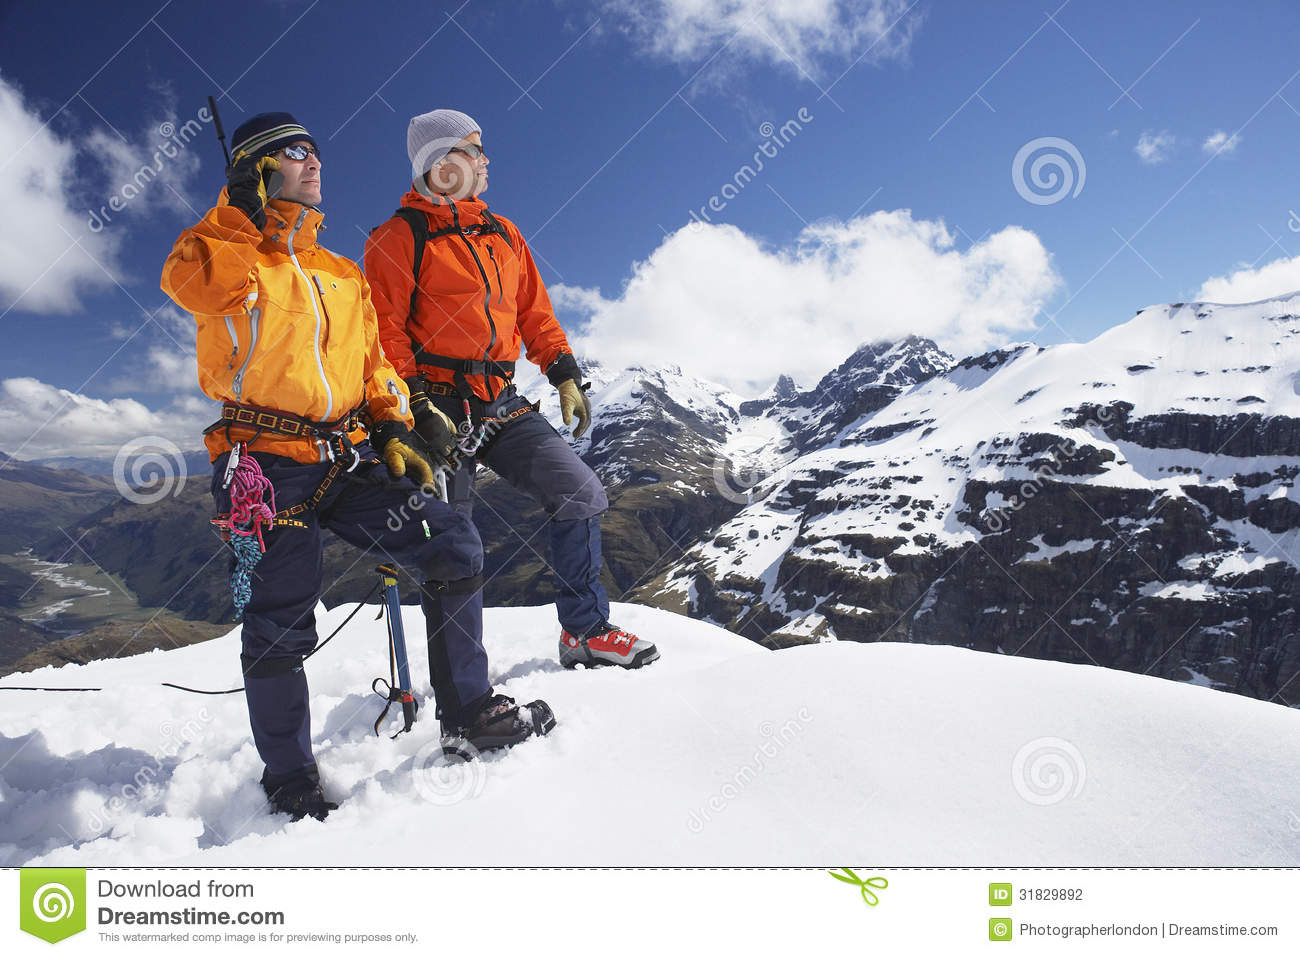 Two Male Mountain Climbers On Snowy Peak Against Sky With One Using